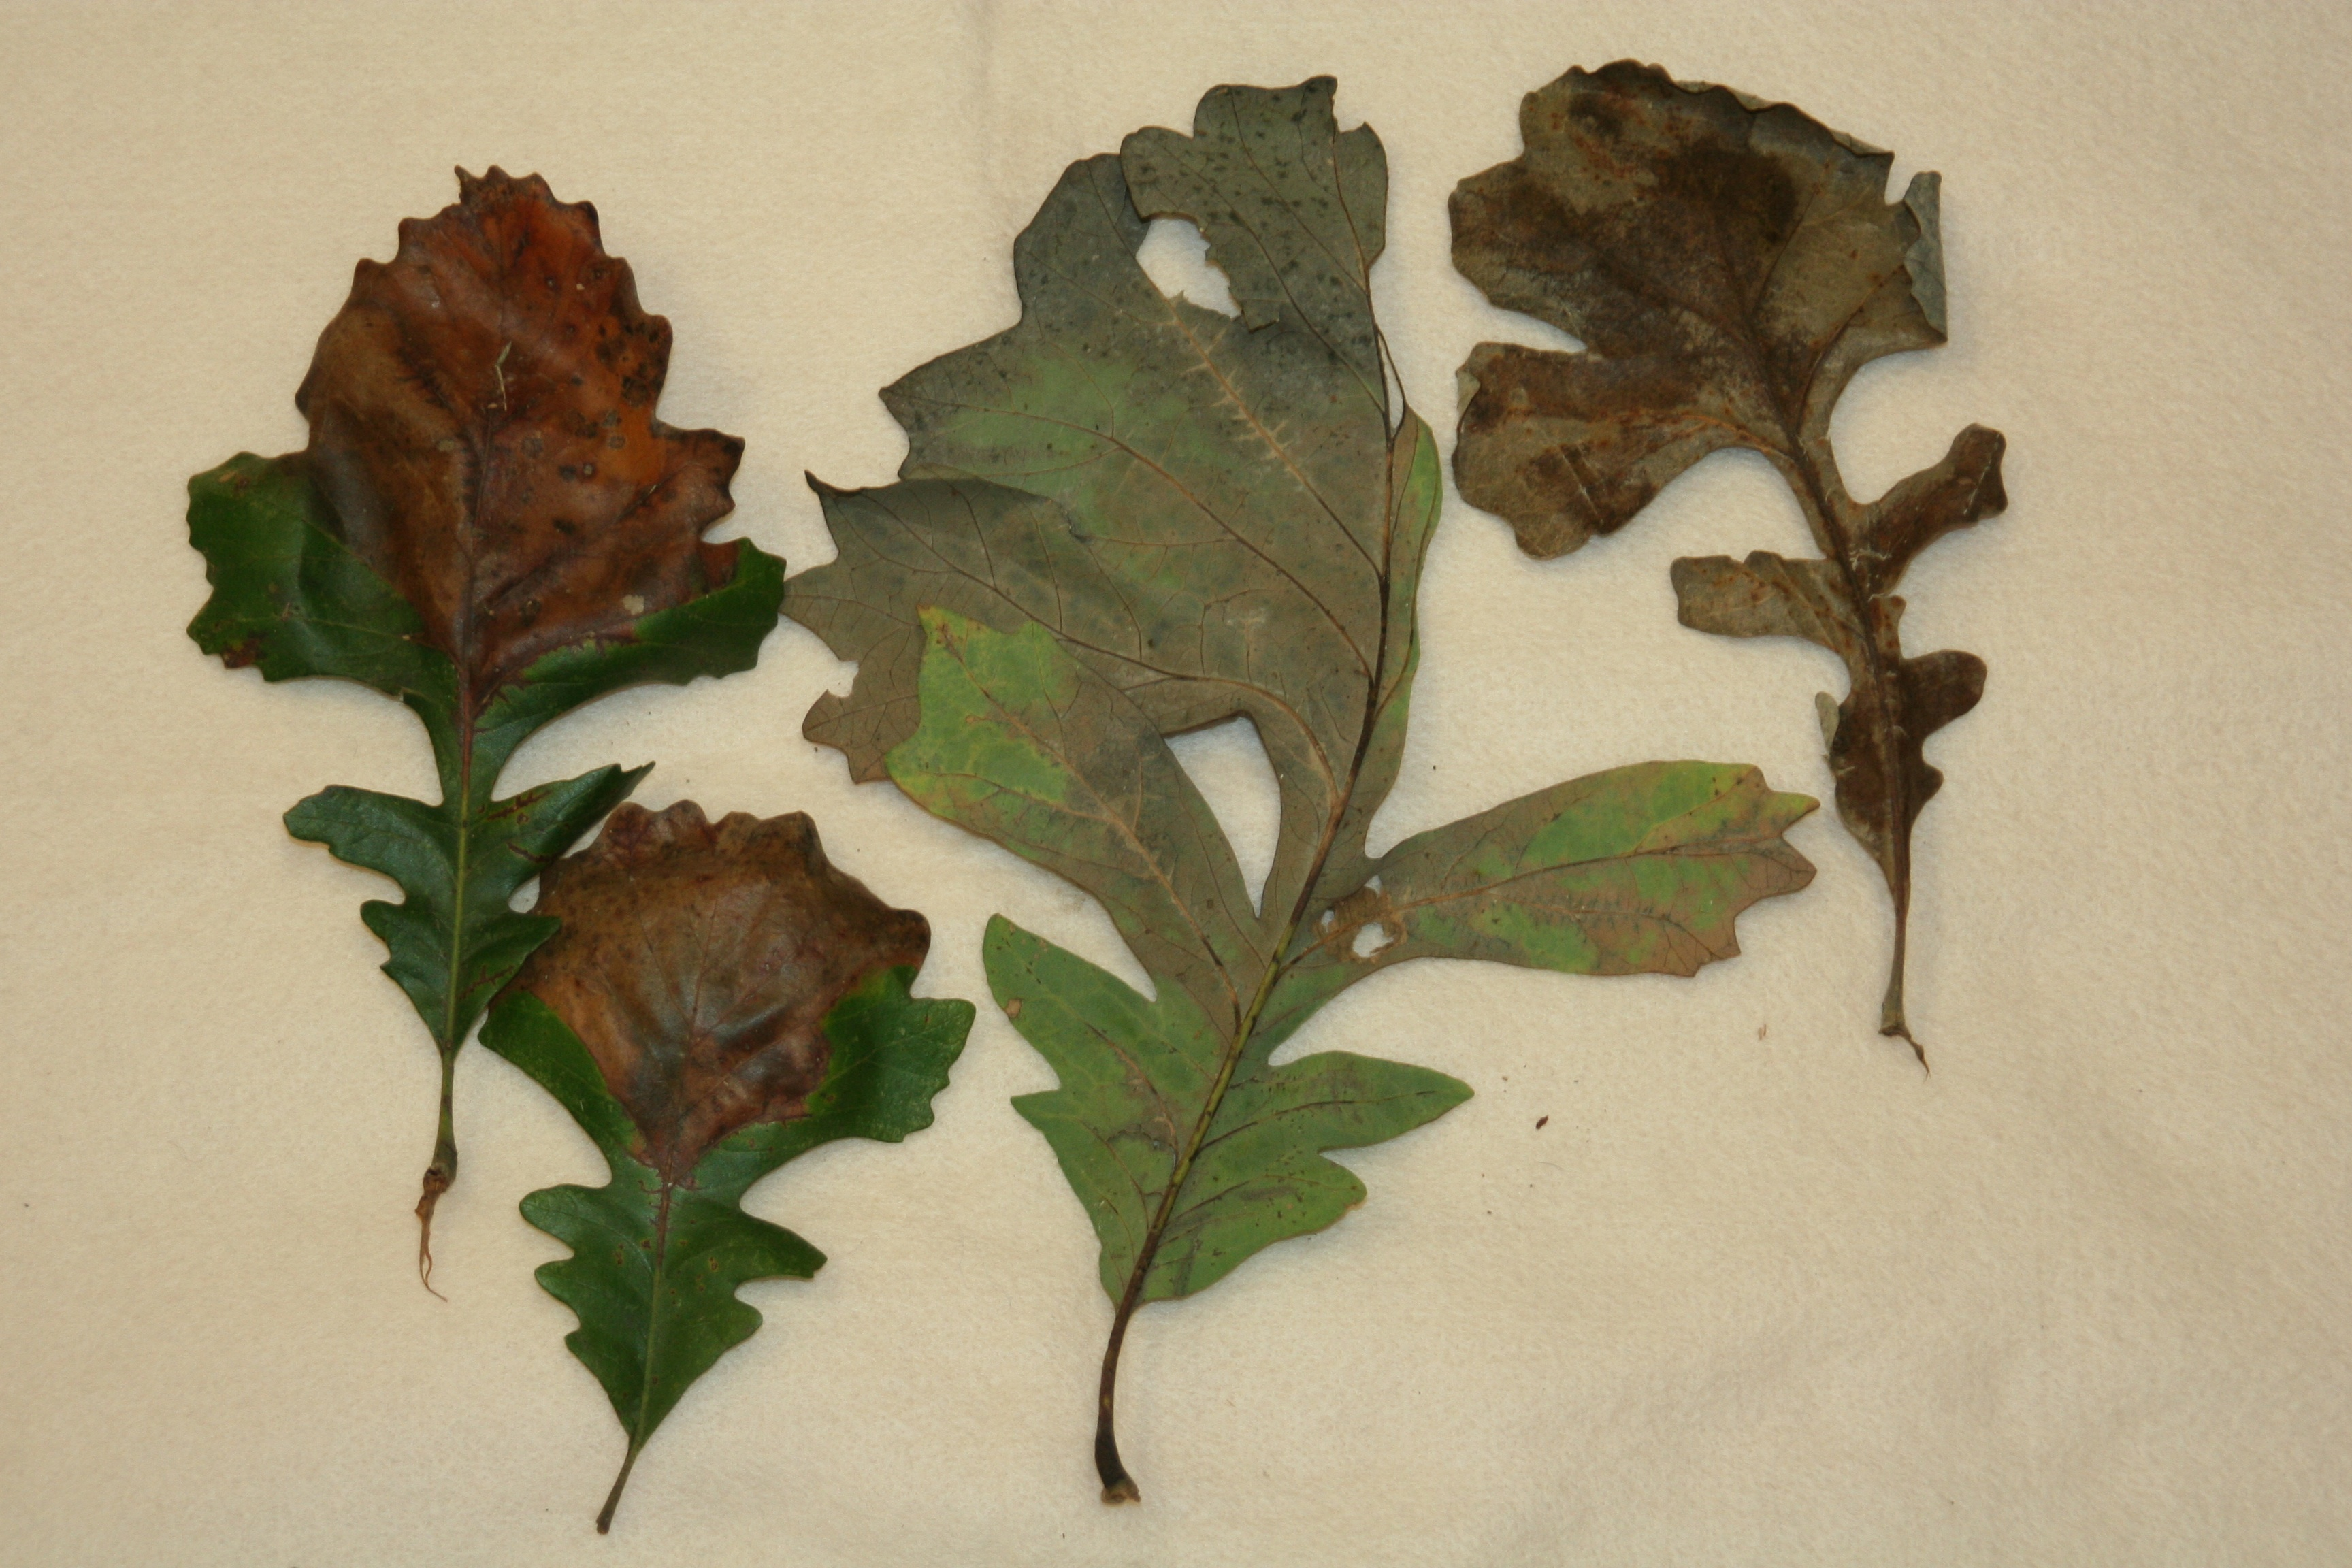 Discoloration On Oak Leaves May Be Caused By Bur Oak